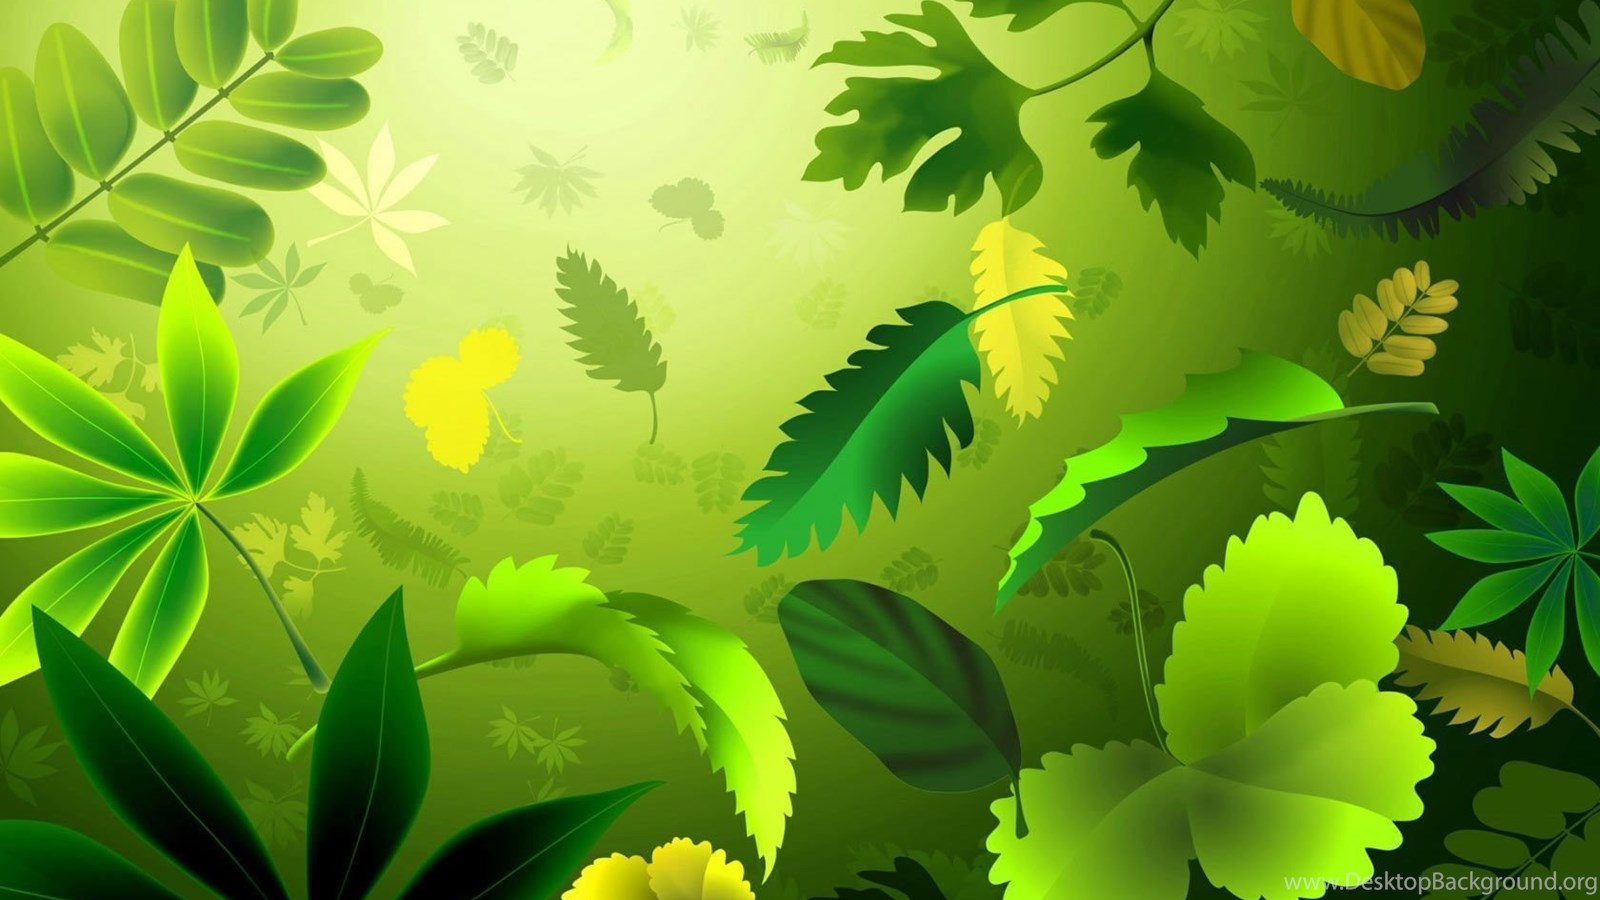 Free nature powerpoint templates images templates example free 100 16 powerpoint backgrounds download free abstract ppt 16 powerpoint backgrounds download free nature ppt backgrounds toneelgroepblik Images